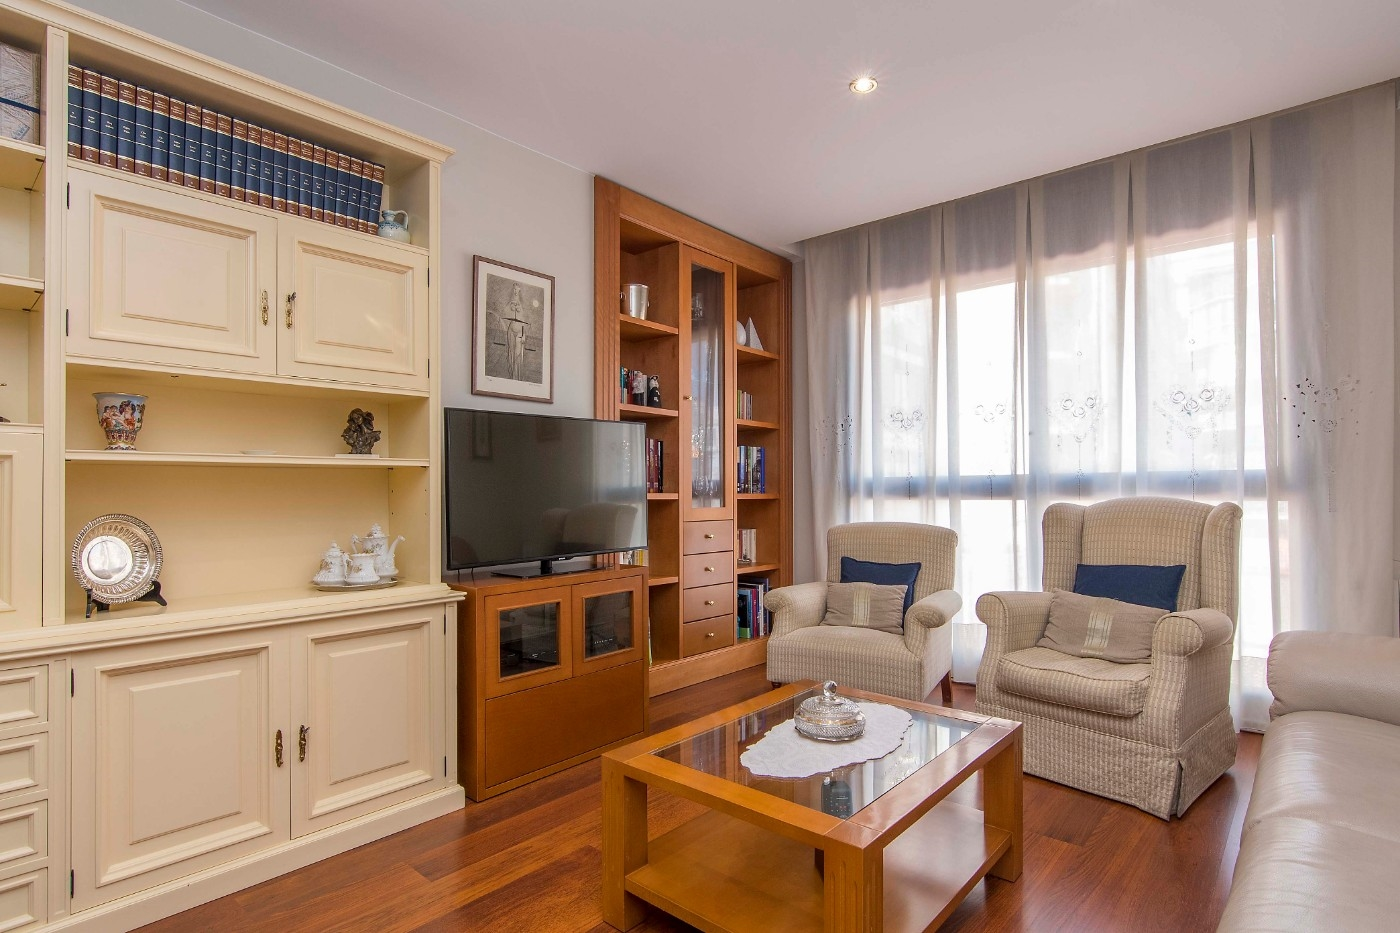 Apartment in Barcelona - eixample. Terrace.4 bedrooms. For sale: 550.000 €.